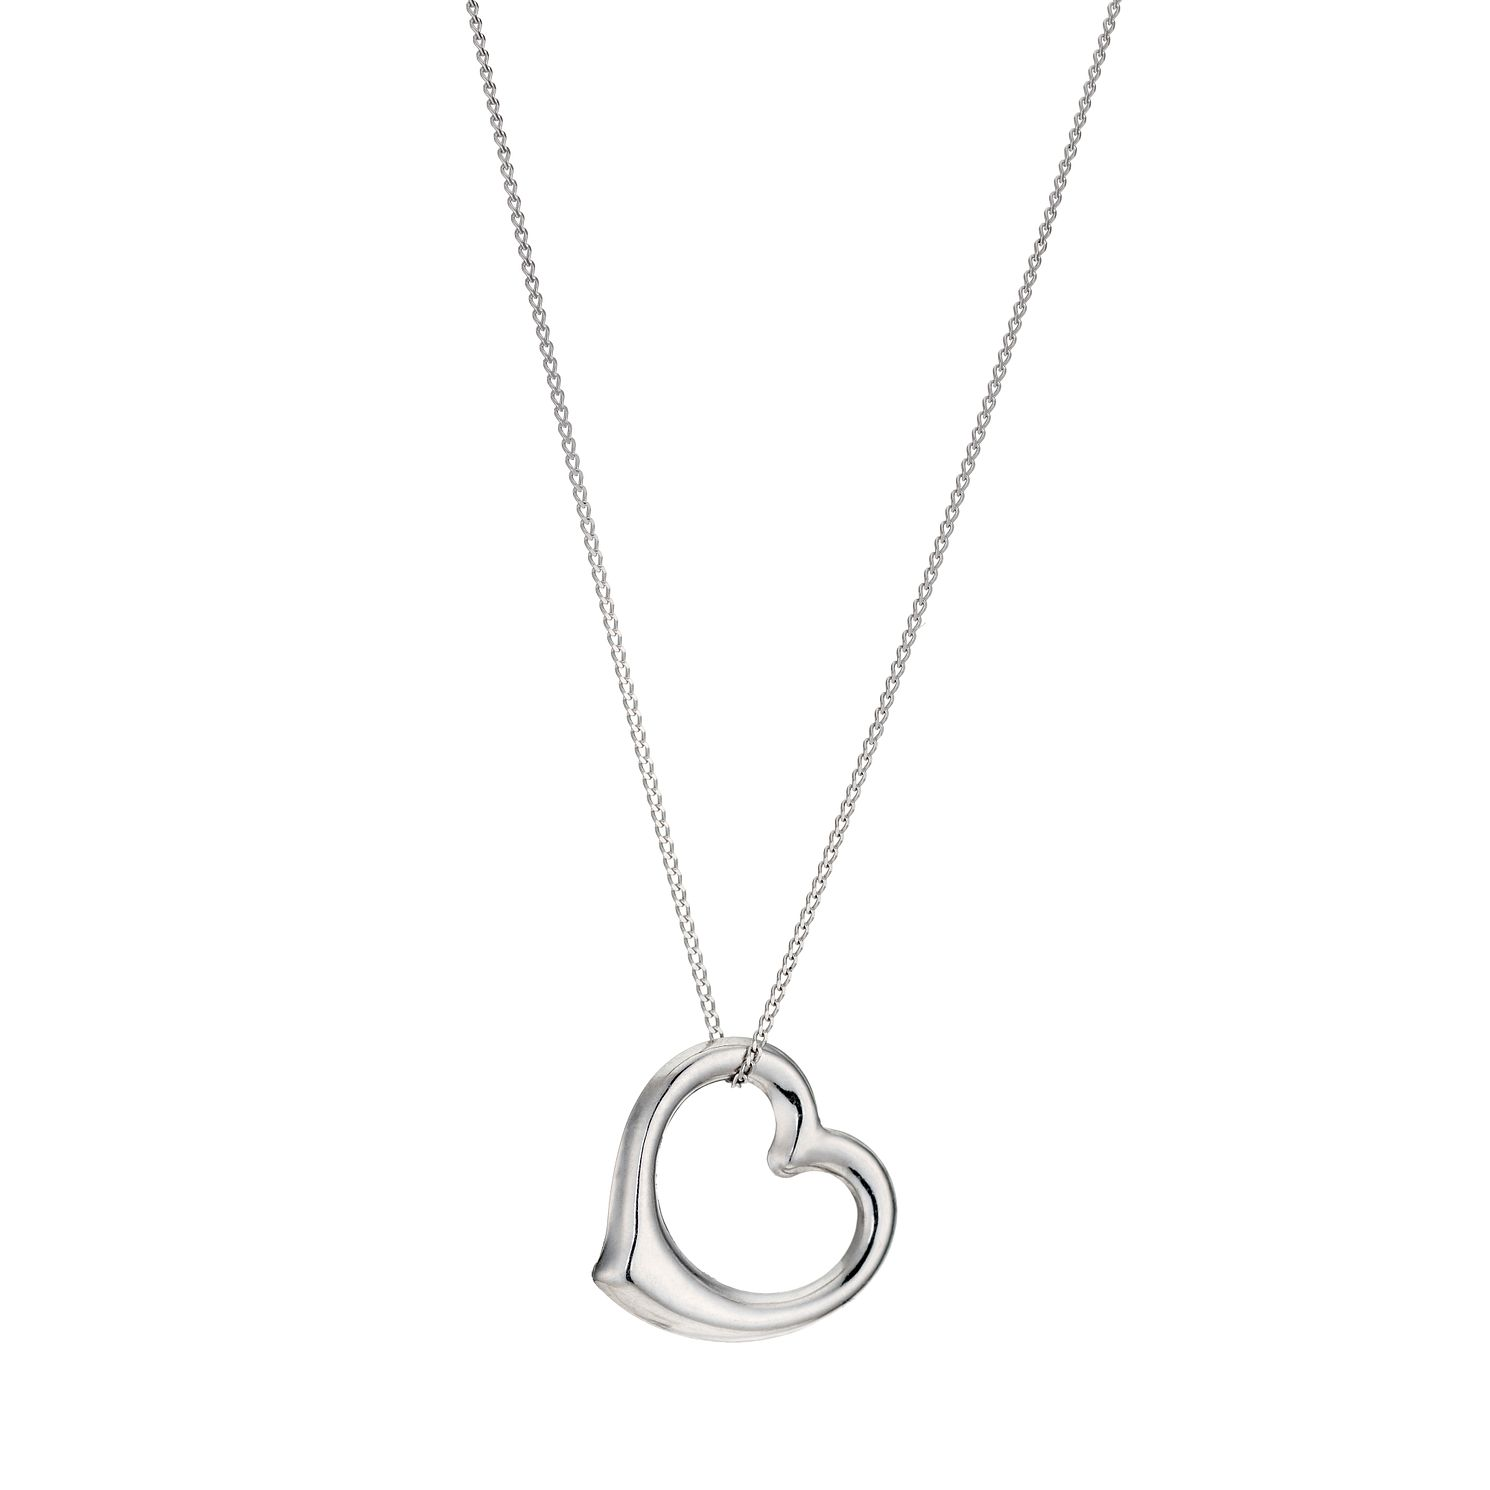 Heart necklaces hmuel 9ct white gold 18 swinging heart pendant product number 1063960 aloadofball Gallery